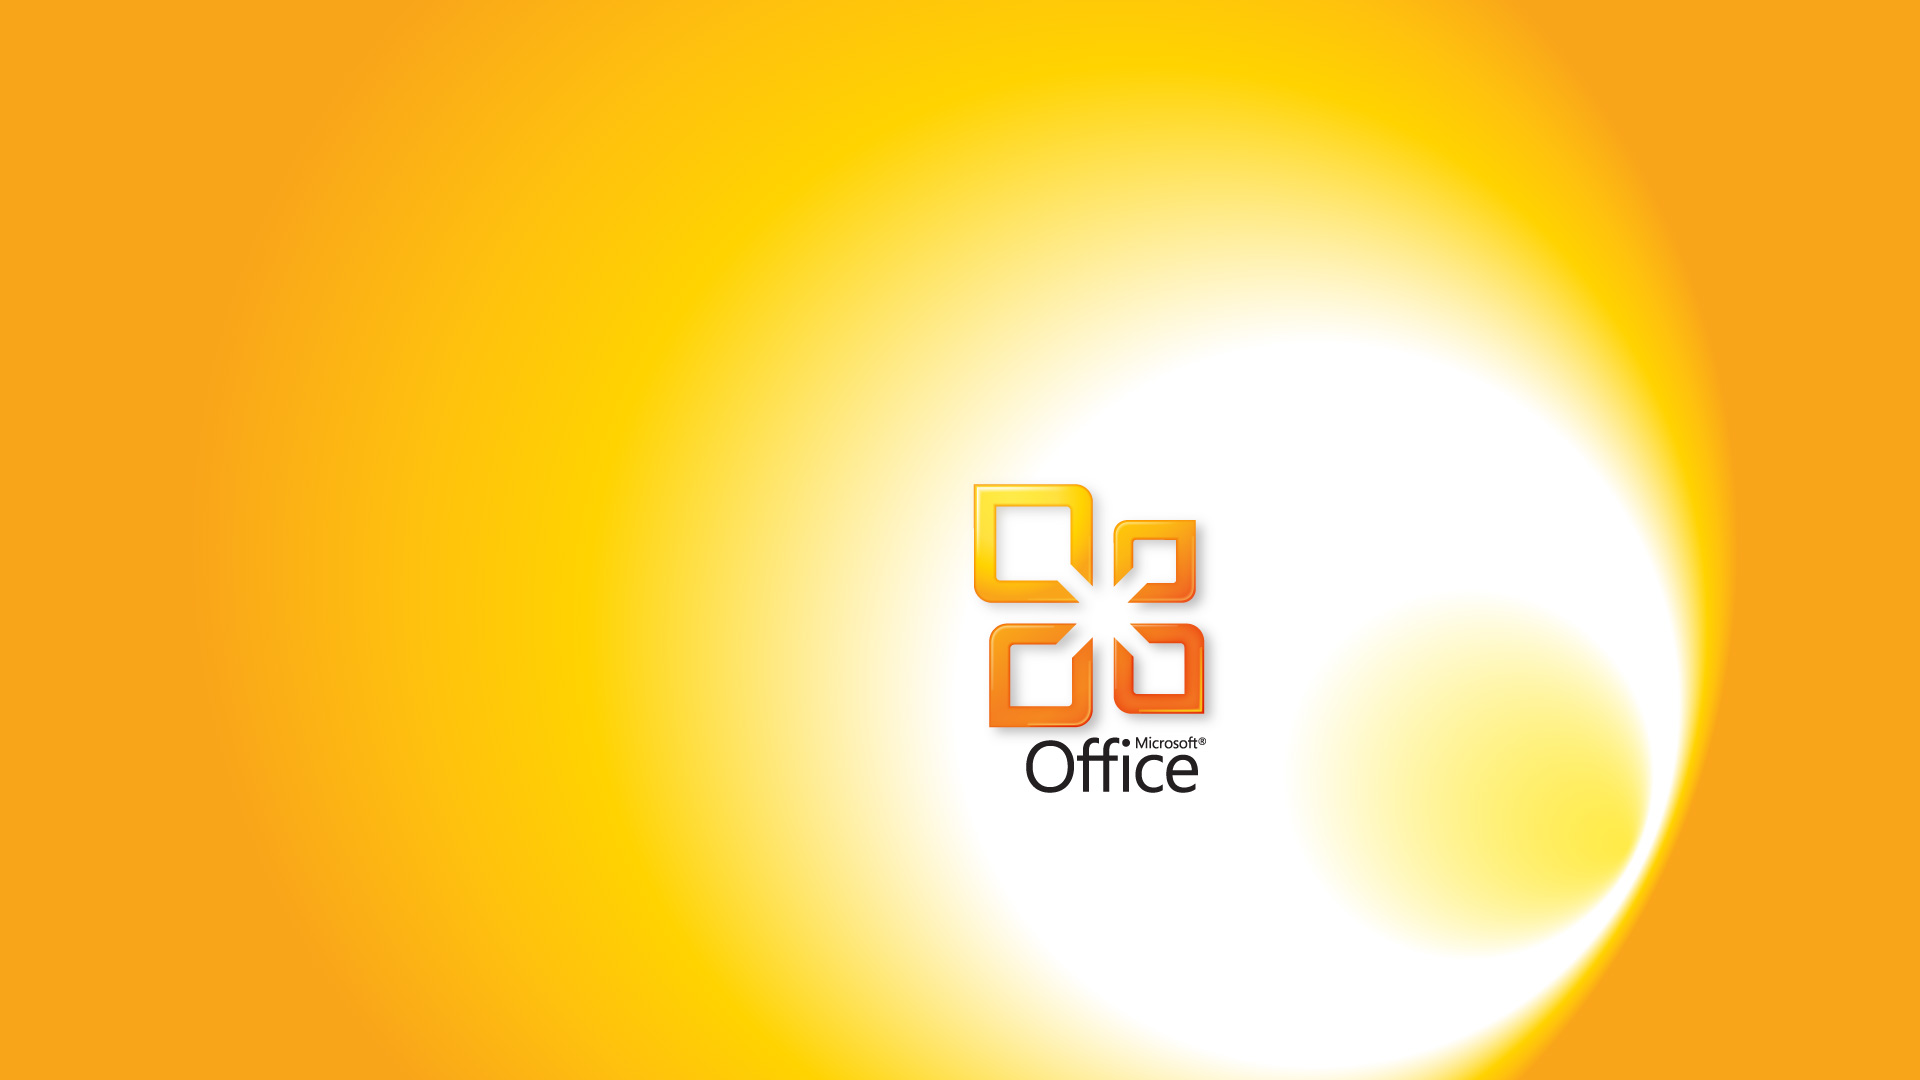 office 365 wallpaper backgrounds office wallpapers